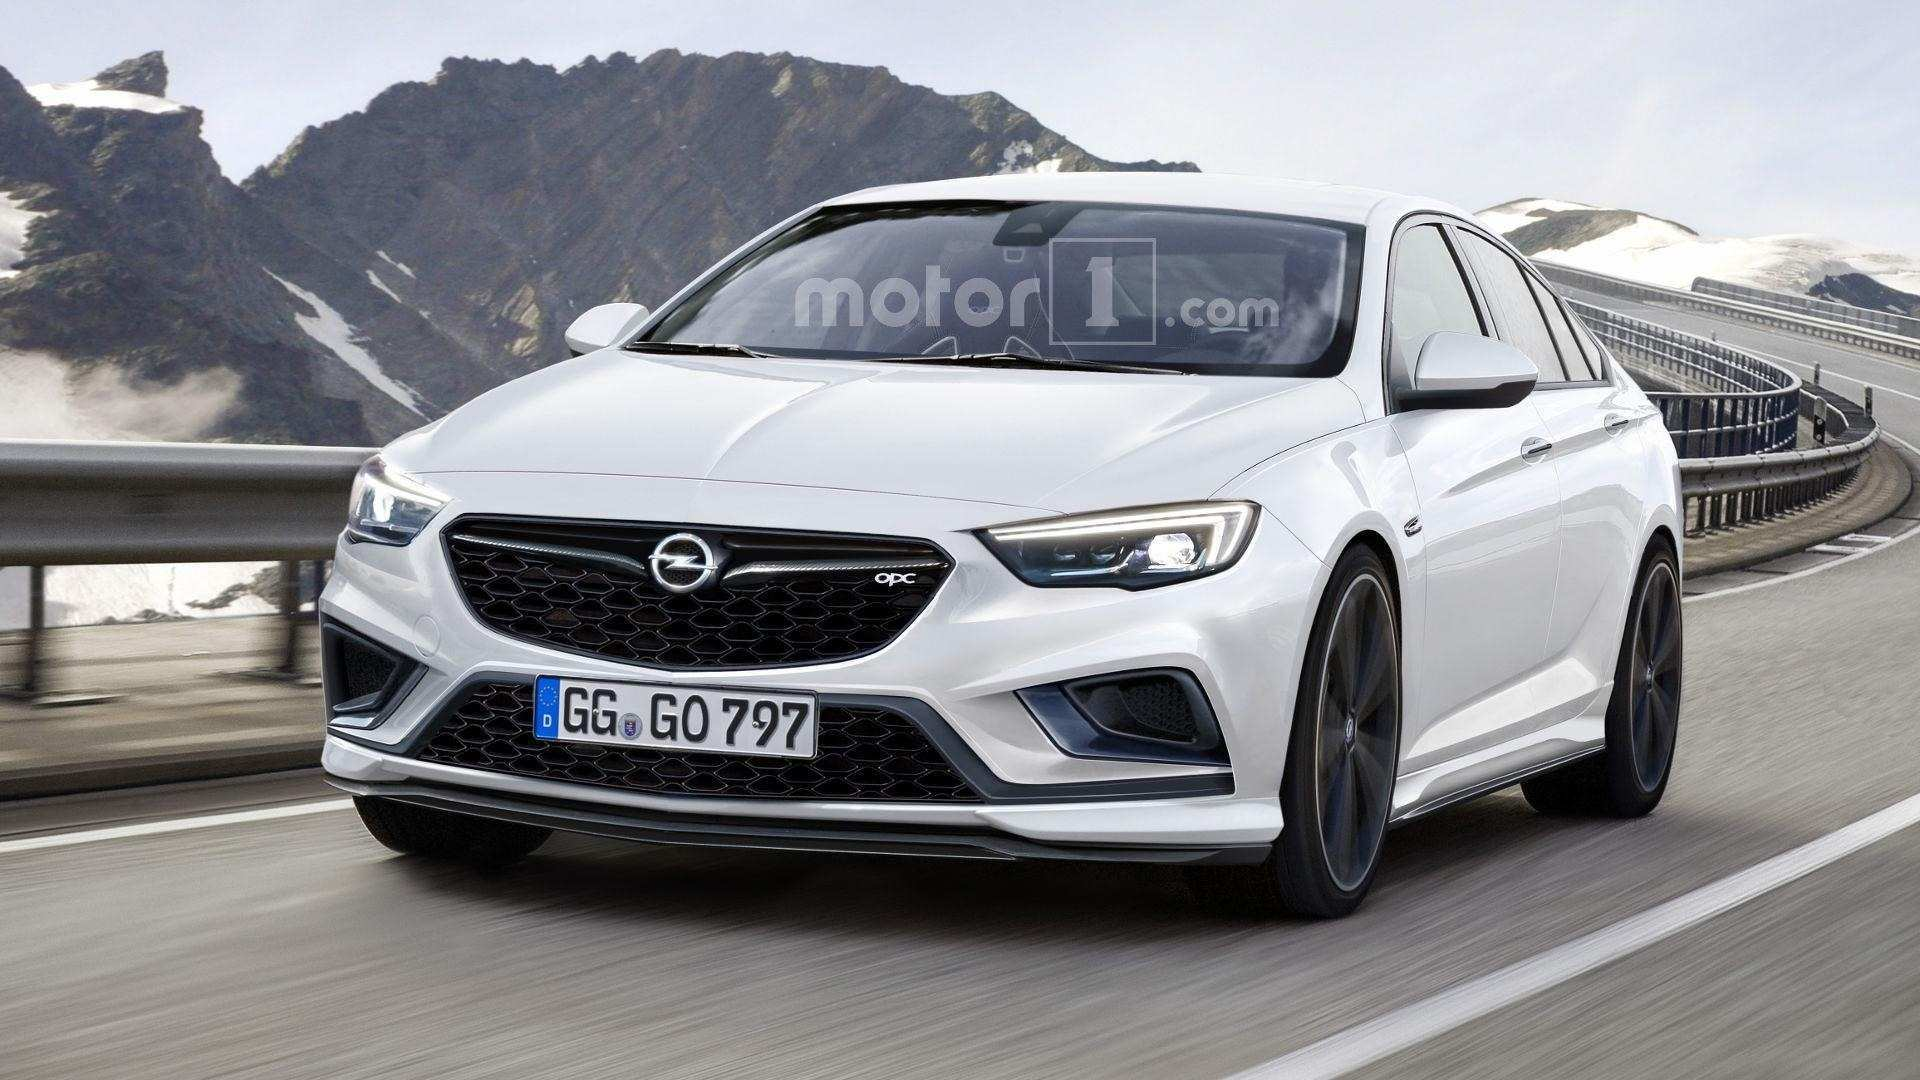 93 The 2020 New Opel Insignia 2018 Price and Review for 2020 New Opel Insignia 2018